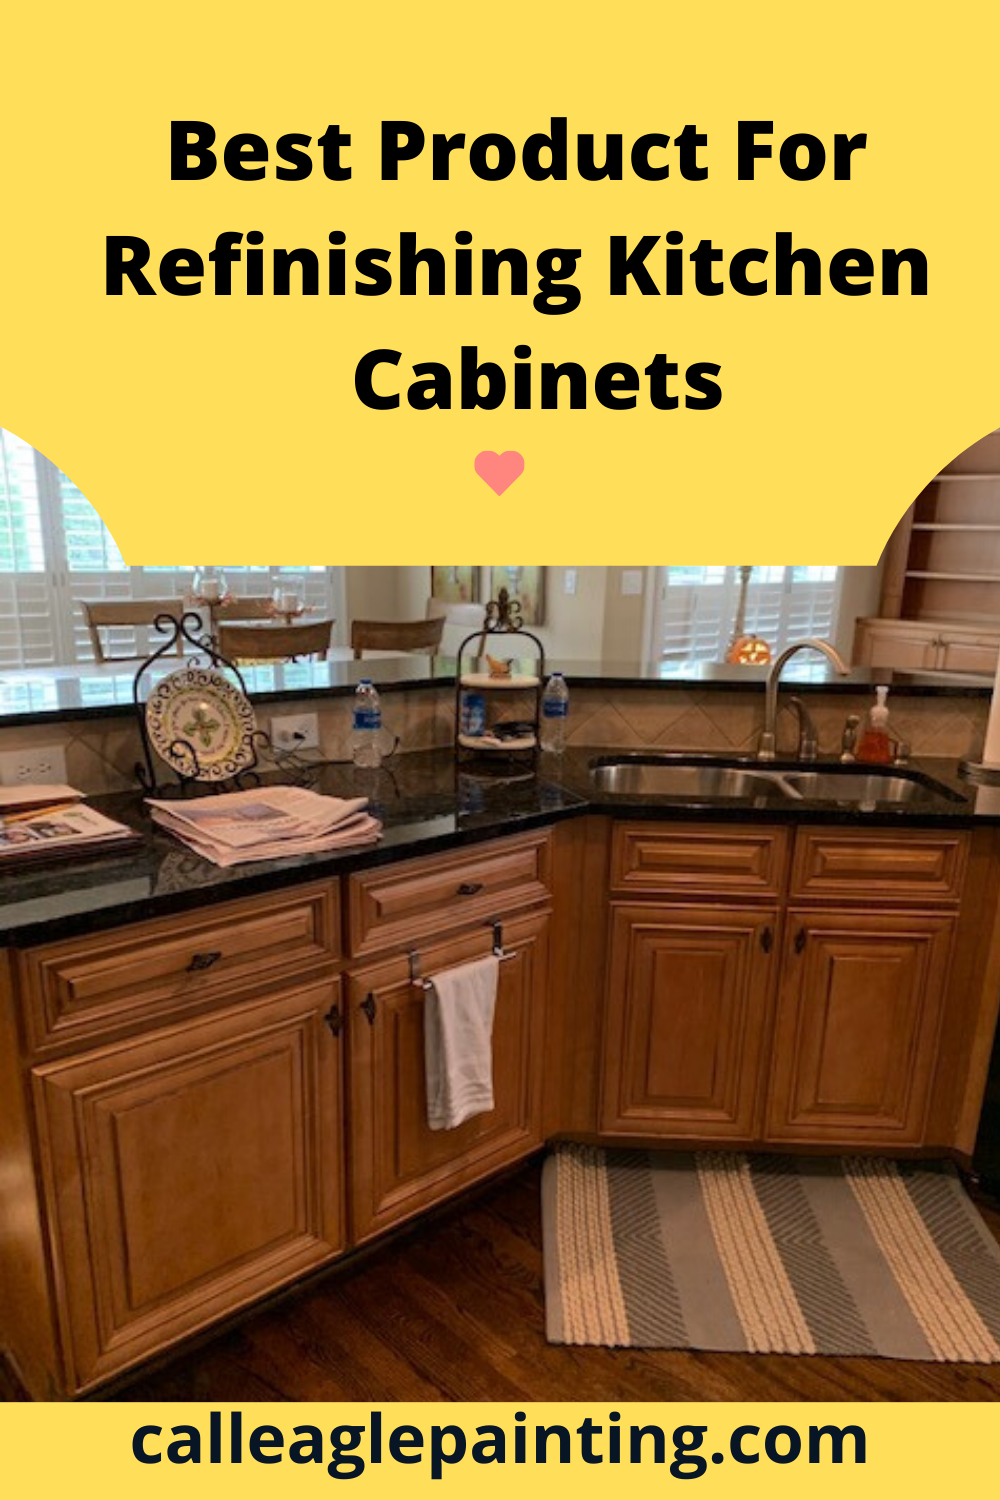 Best Product For Refinishing Cabinets Kitchen Cabinet Plans Kitchen Cabinets Cheap Kitchen Cabinets